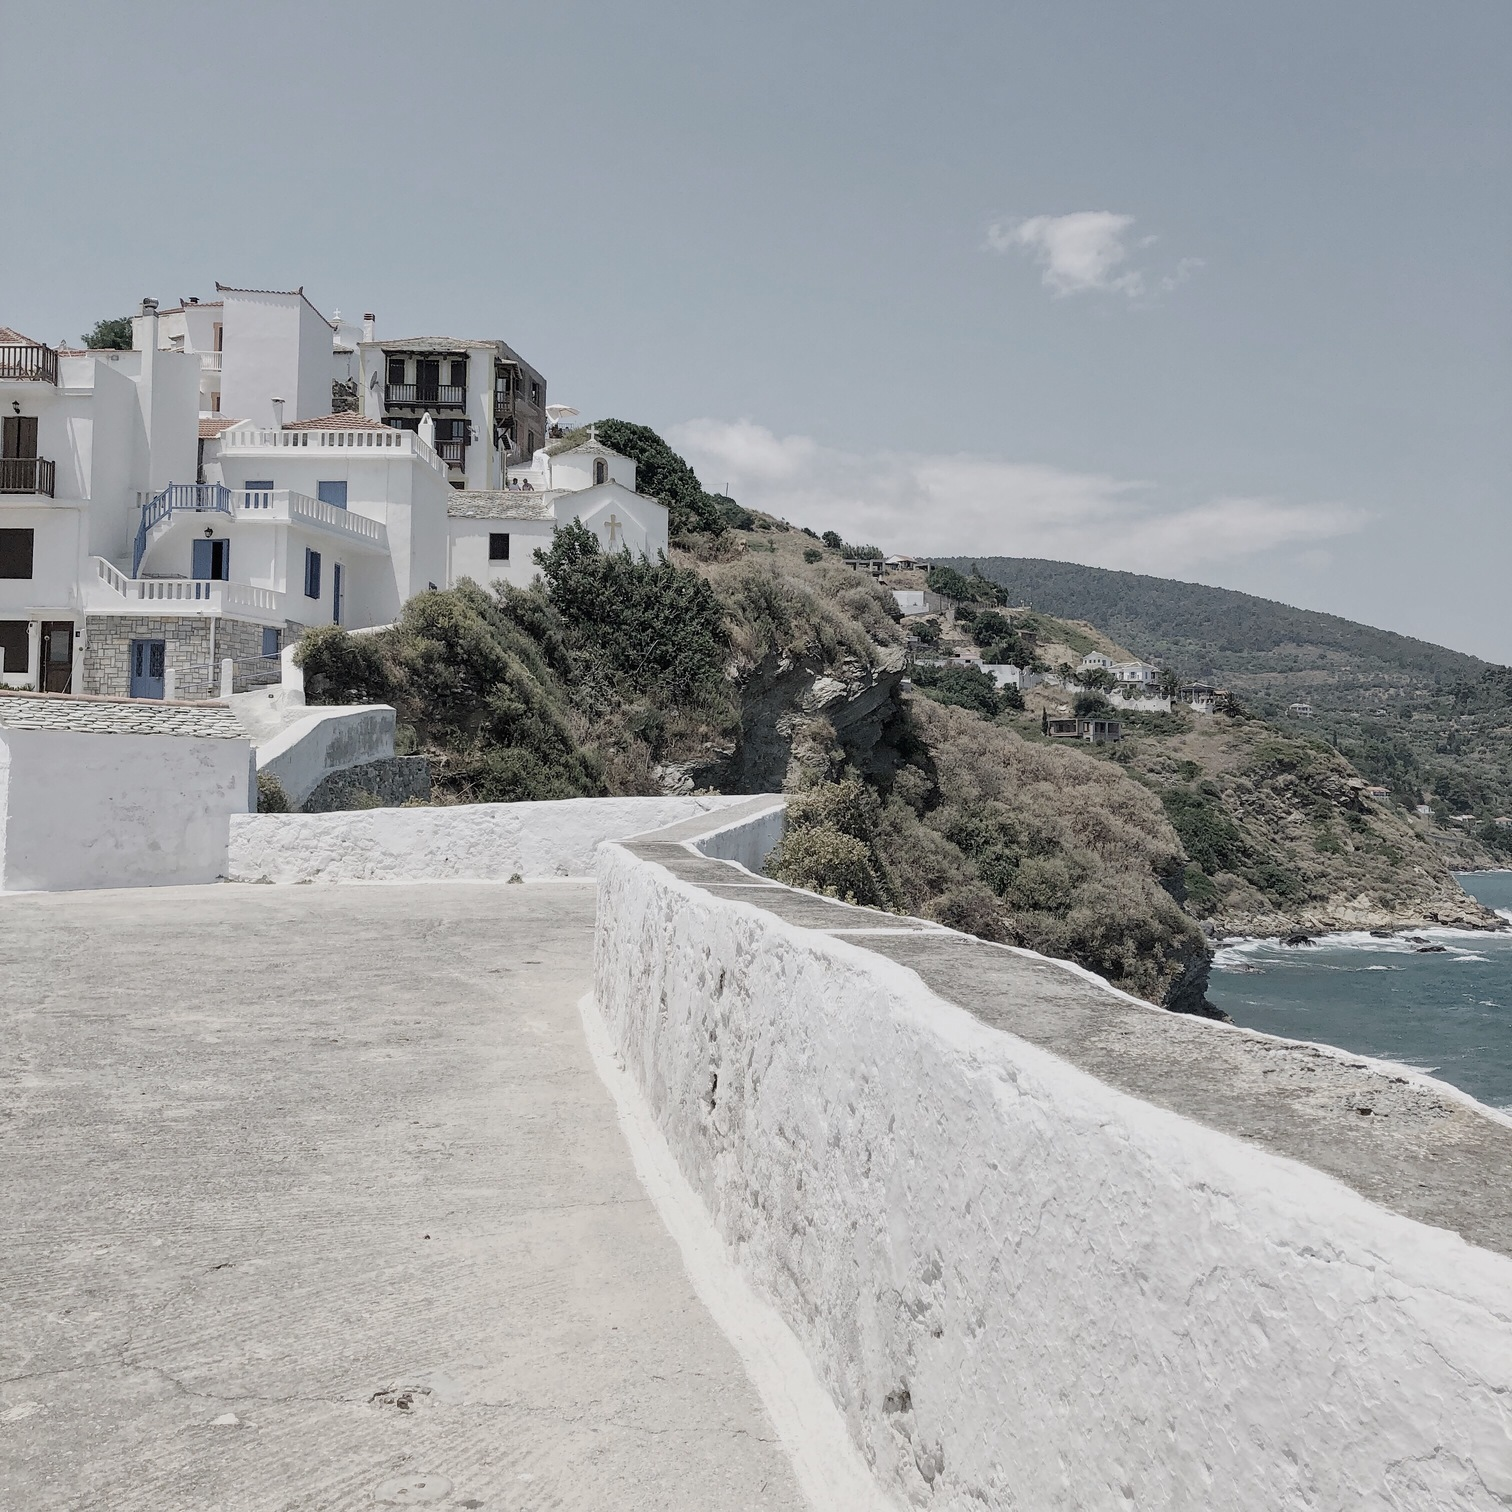 A Slow Travel Guide to Skopelos in Pictures